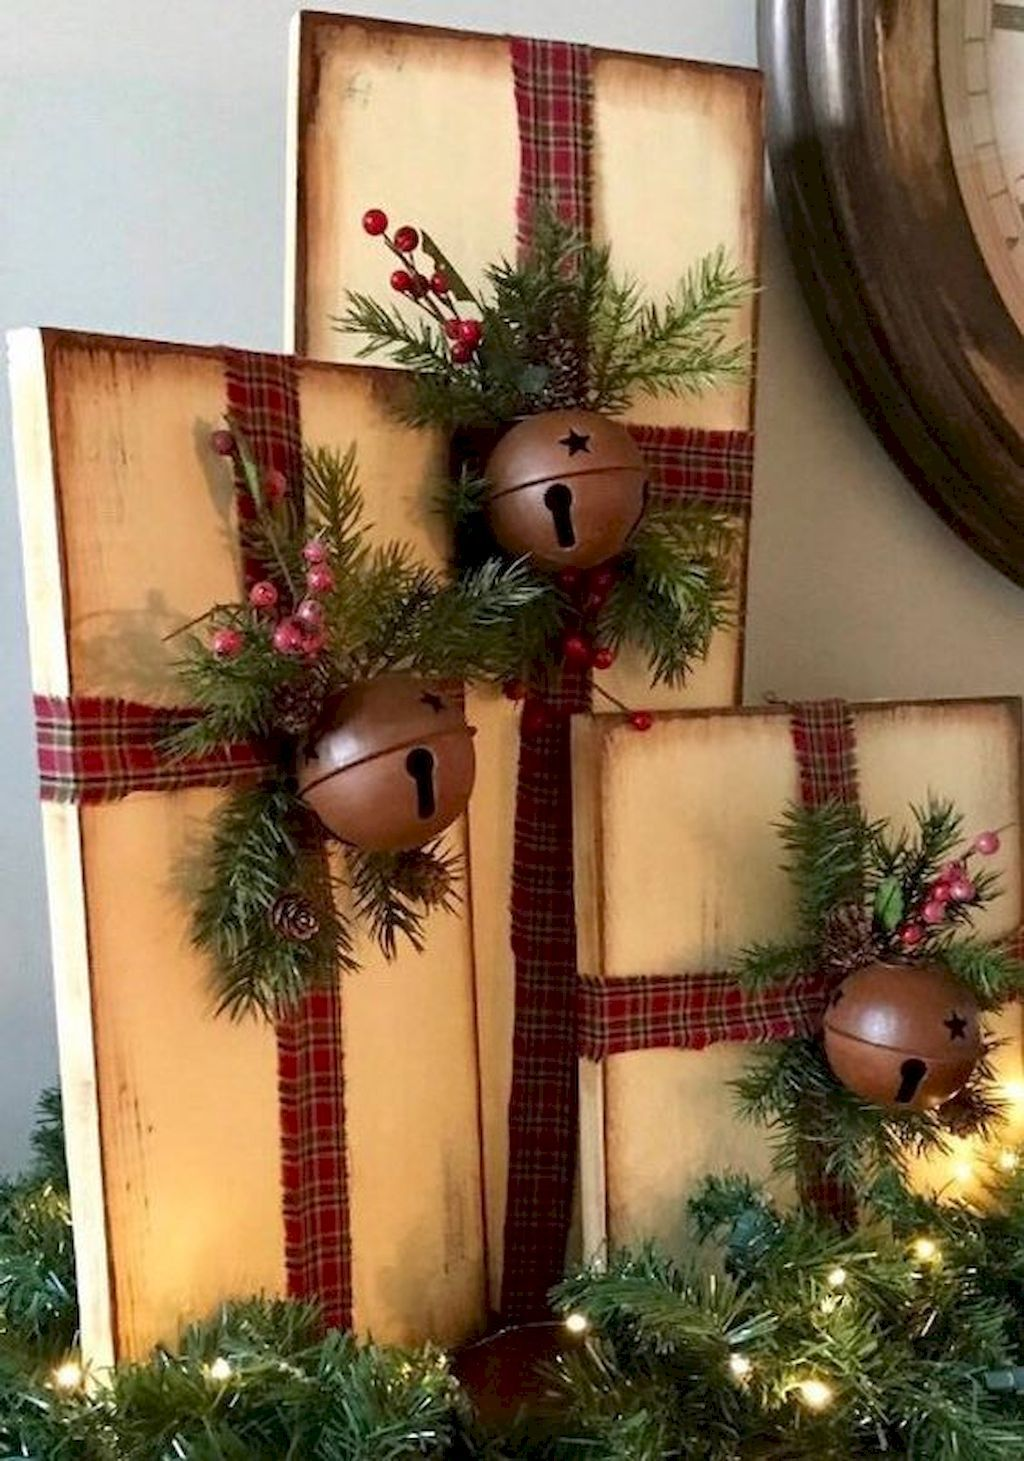 34 Awesome Rustic Farmhouse Christmas Decorating Ideas In 2020 Christmas Decorations Christmas Diy Farmhouse Christmas Decor